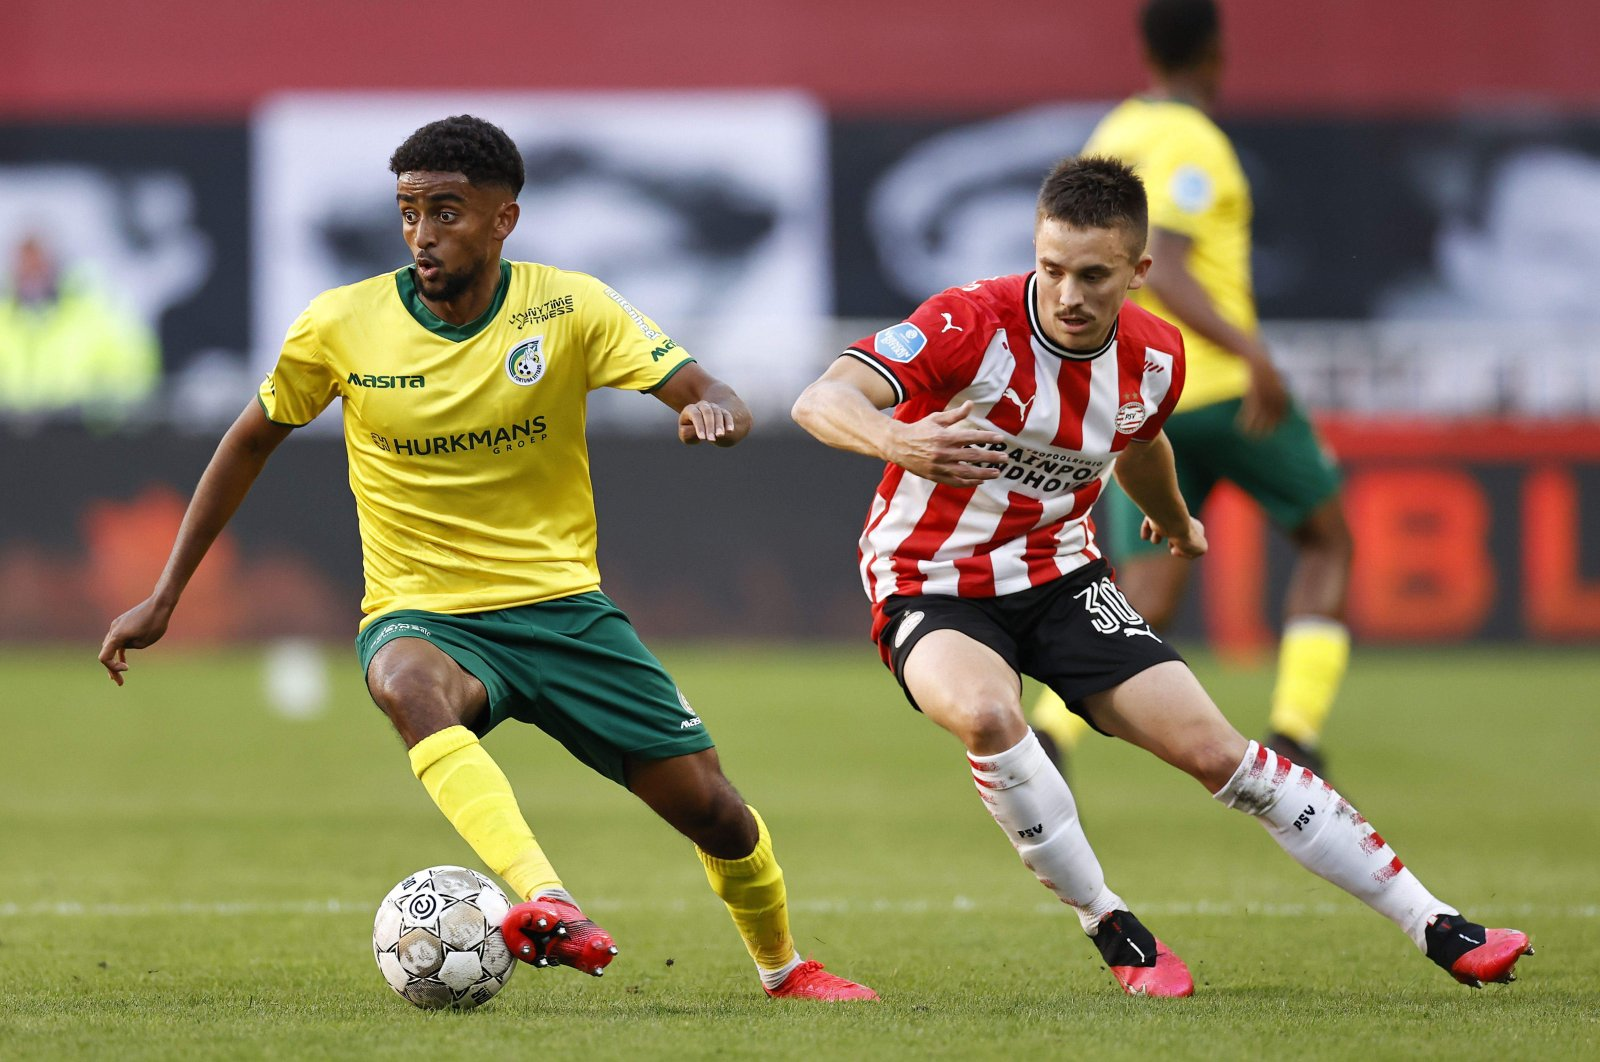 Sittard's Swedish midfielder Tesfaldet Tekie (L) fights for the ball with PSV's Neo Zealander midfielder Ryan Thomas during the Dutch Eredivisie football match between PSV Eindhoven and Acun Ilıcalı's former club, Fortuna Sittard, at the Phillips stadium in Eindhoven, Holland, on October 4, 2020. (AFP File Photo)